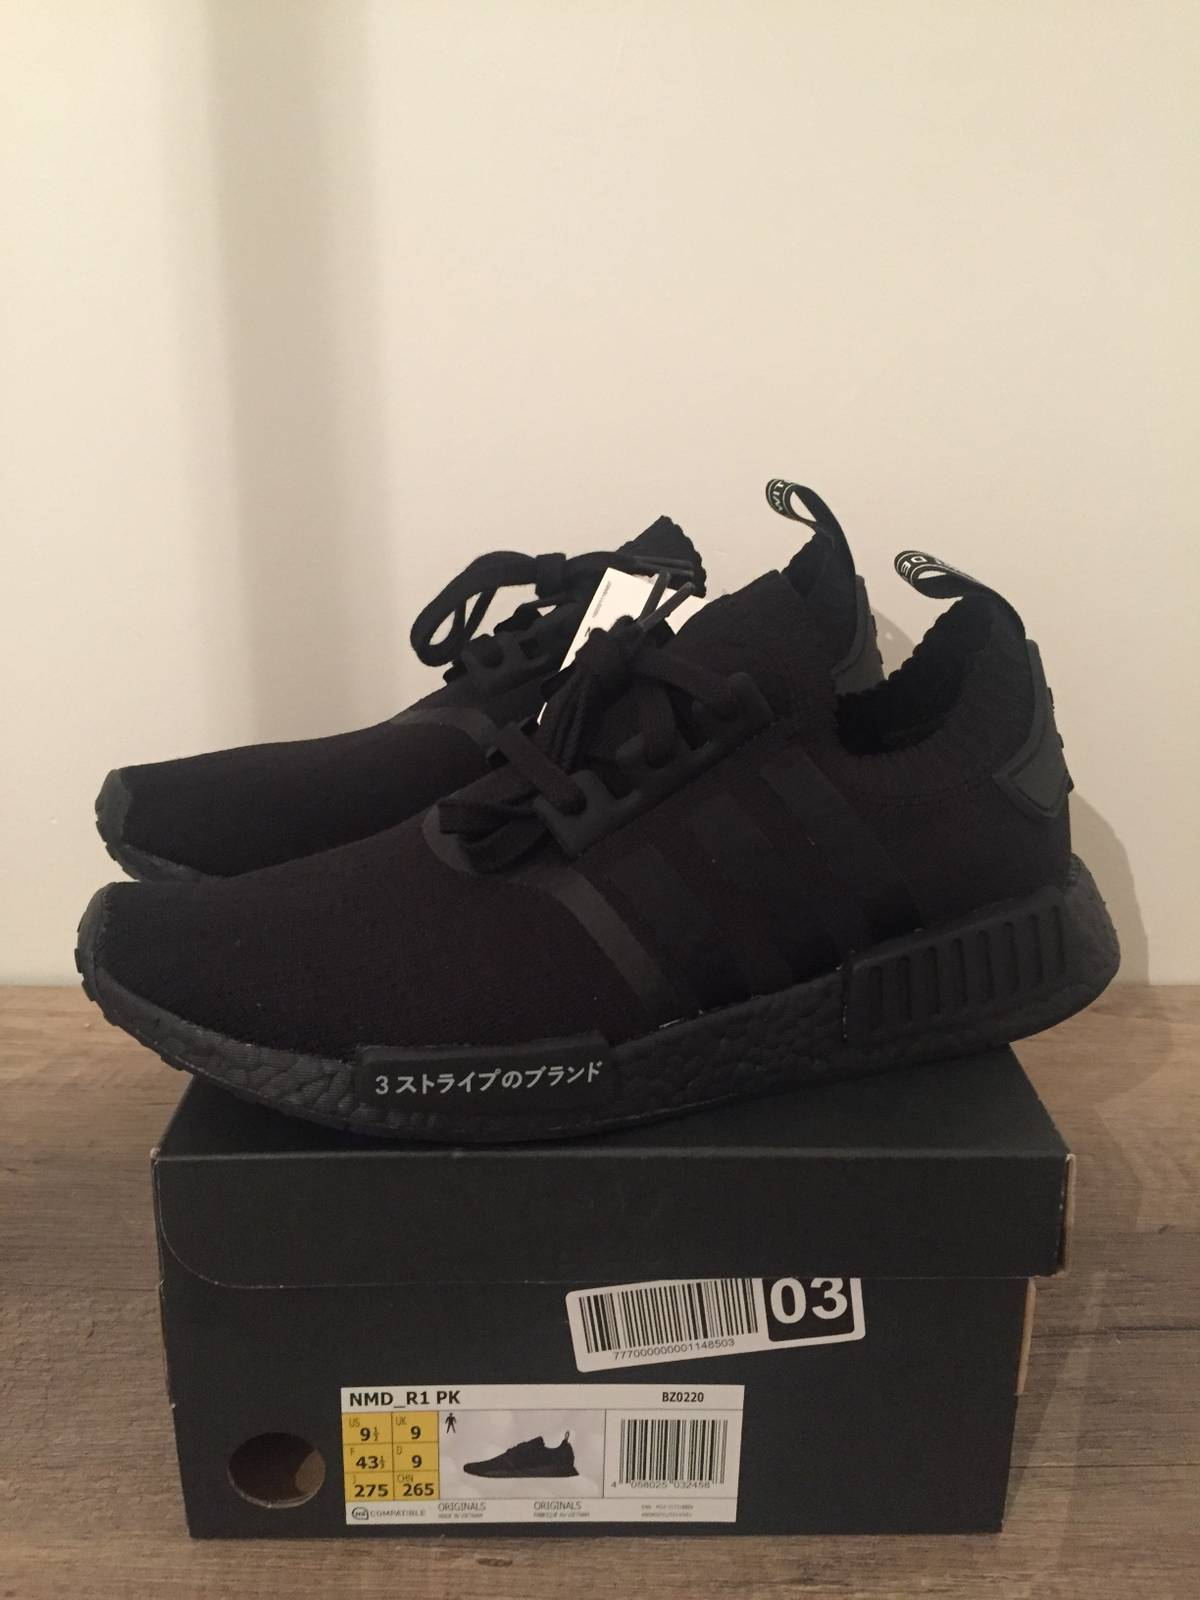 NMD Combined Louis Vuitton X Adidas NMD XR1 Black& Blue Early